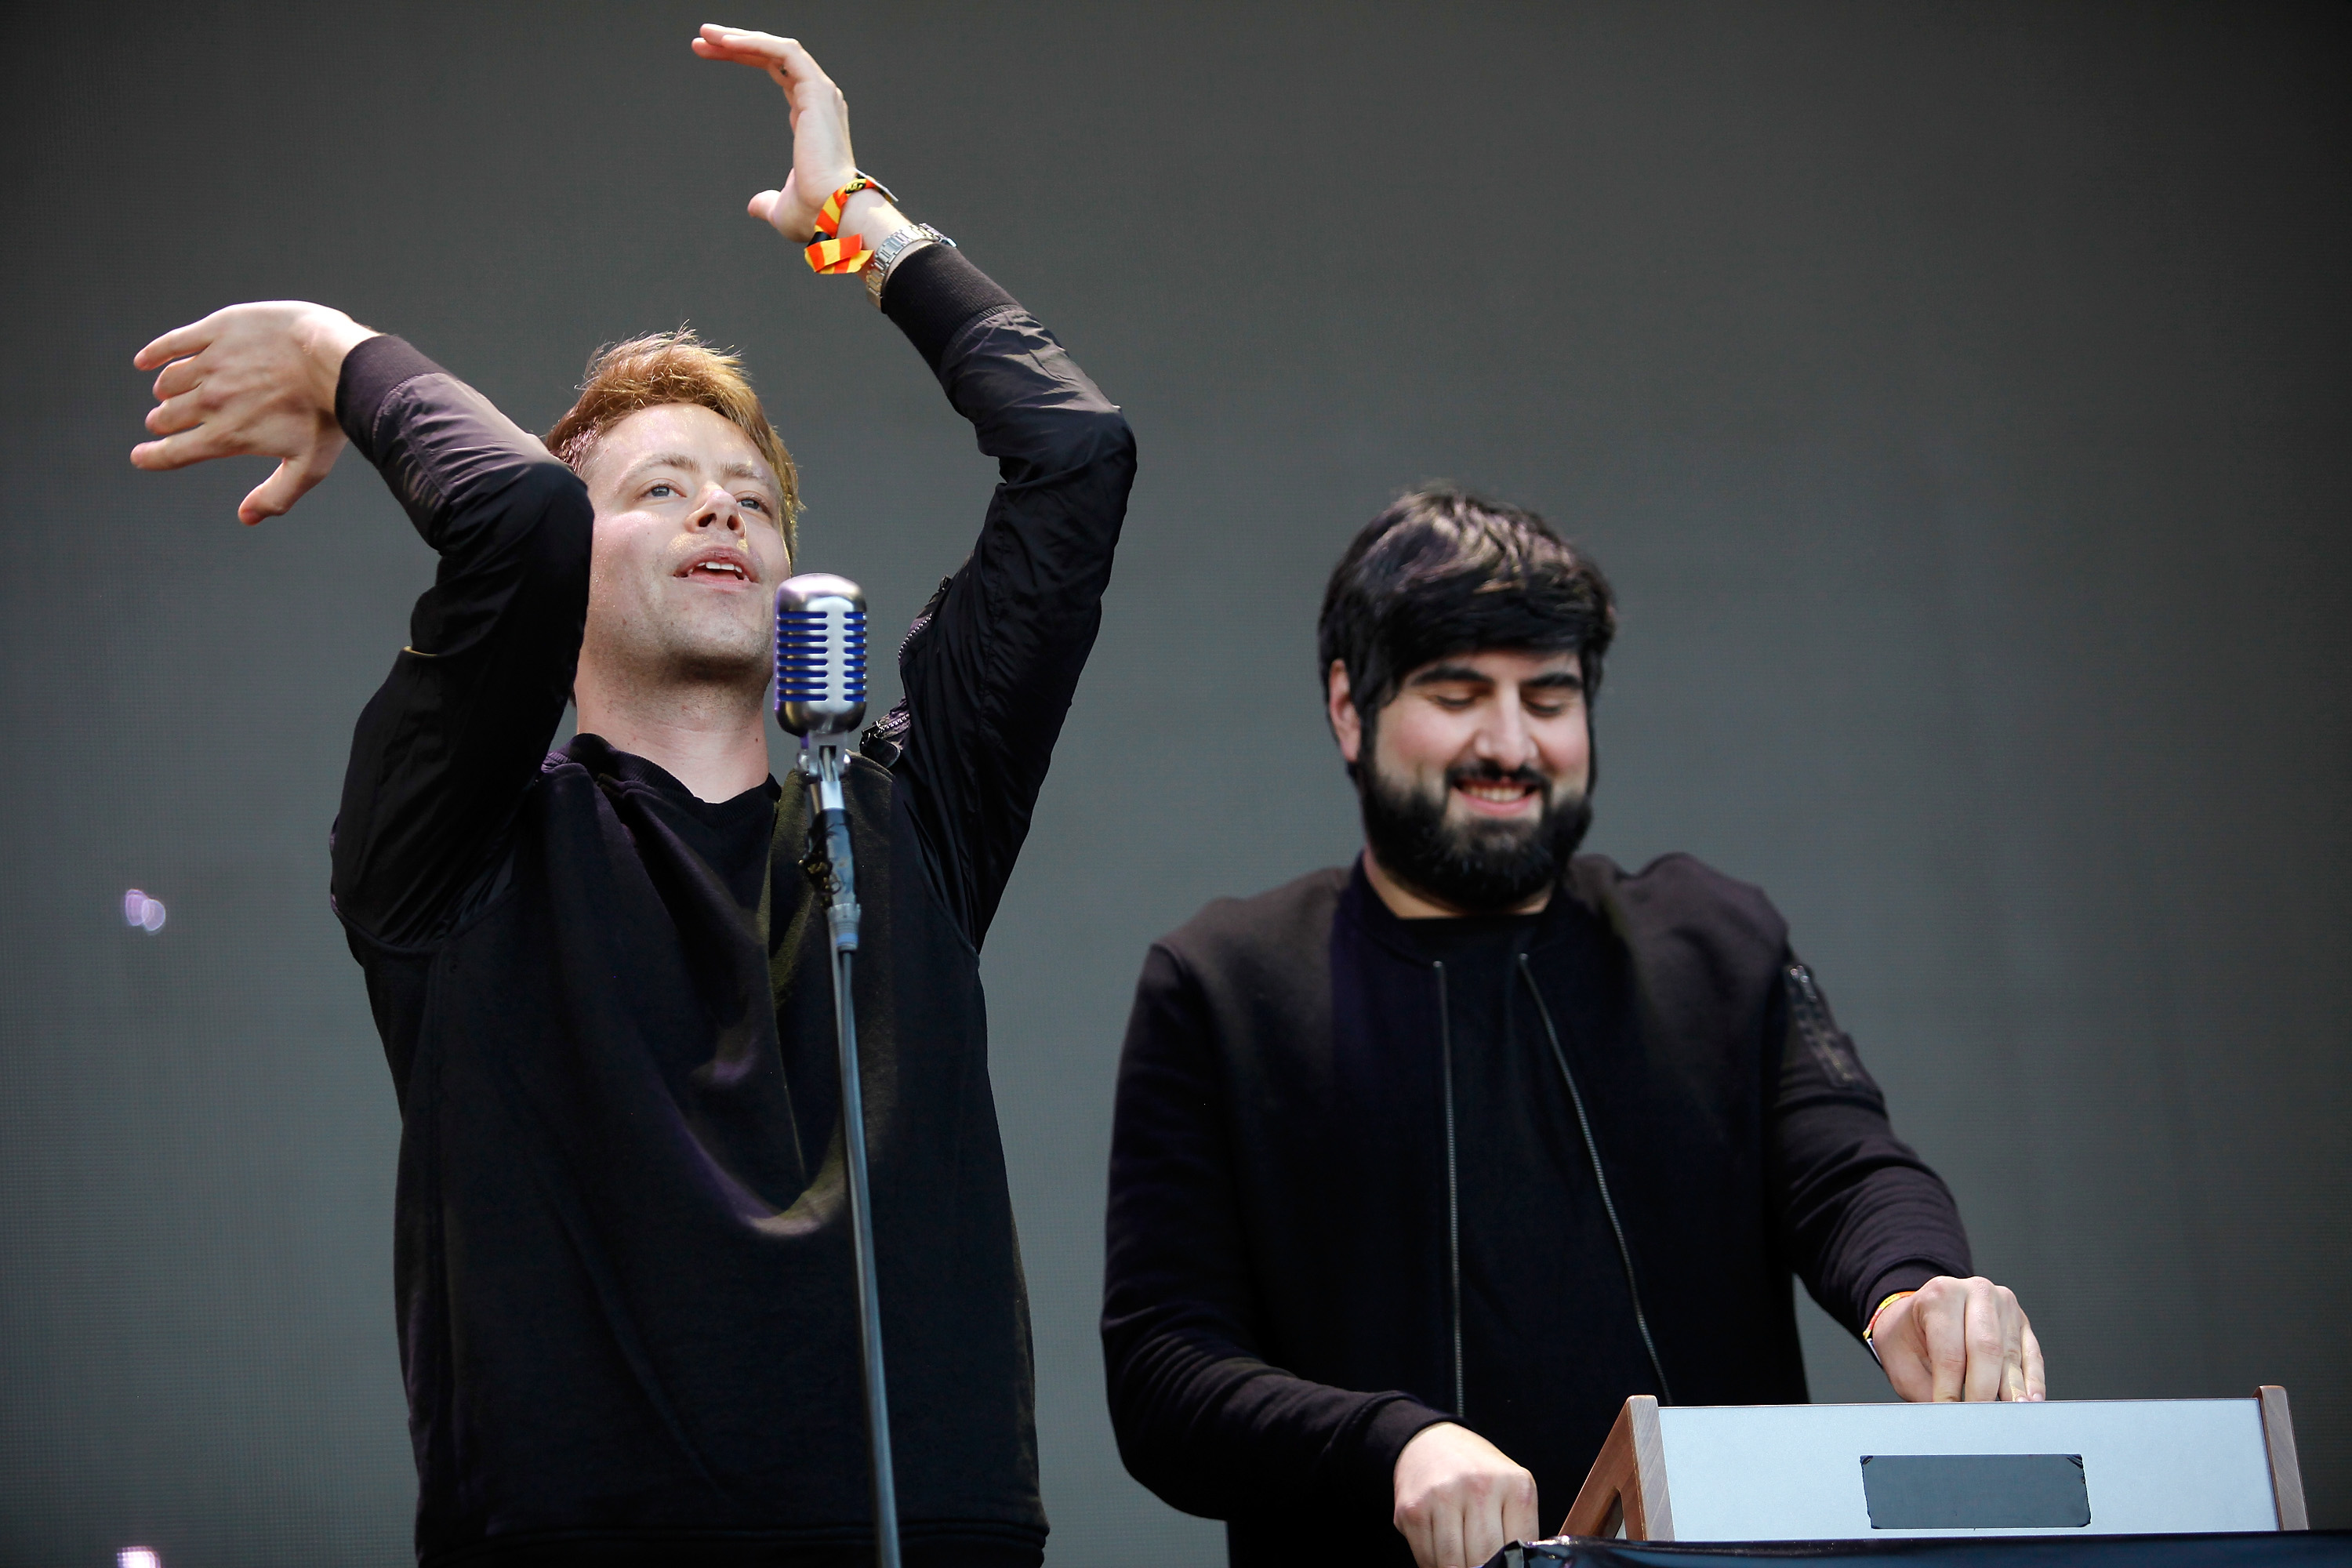 BERLIN, GERMANY - SEPTEMBER 12:  Jens Moelle (L) and Ismail Tuefekci of Digitalism perform live on stage during the first day